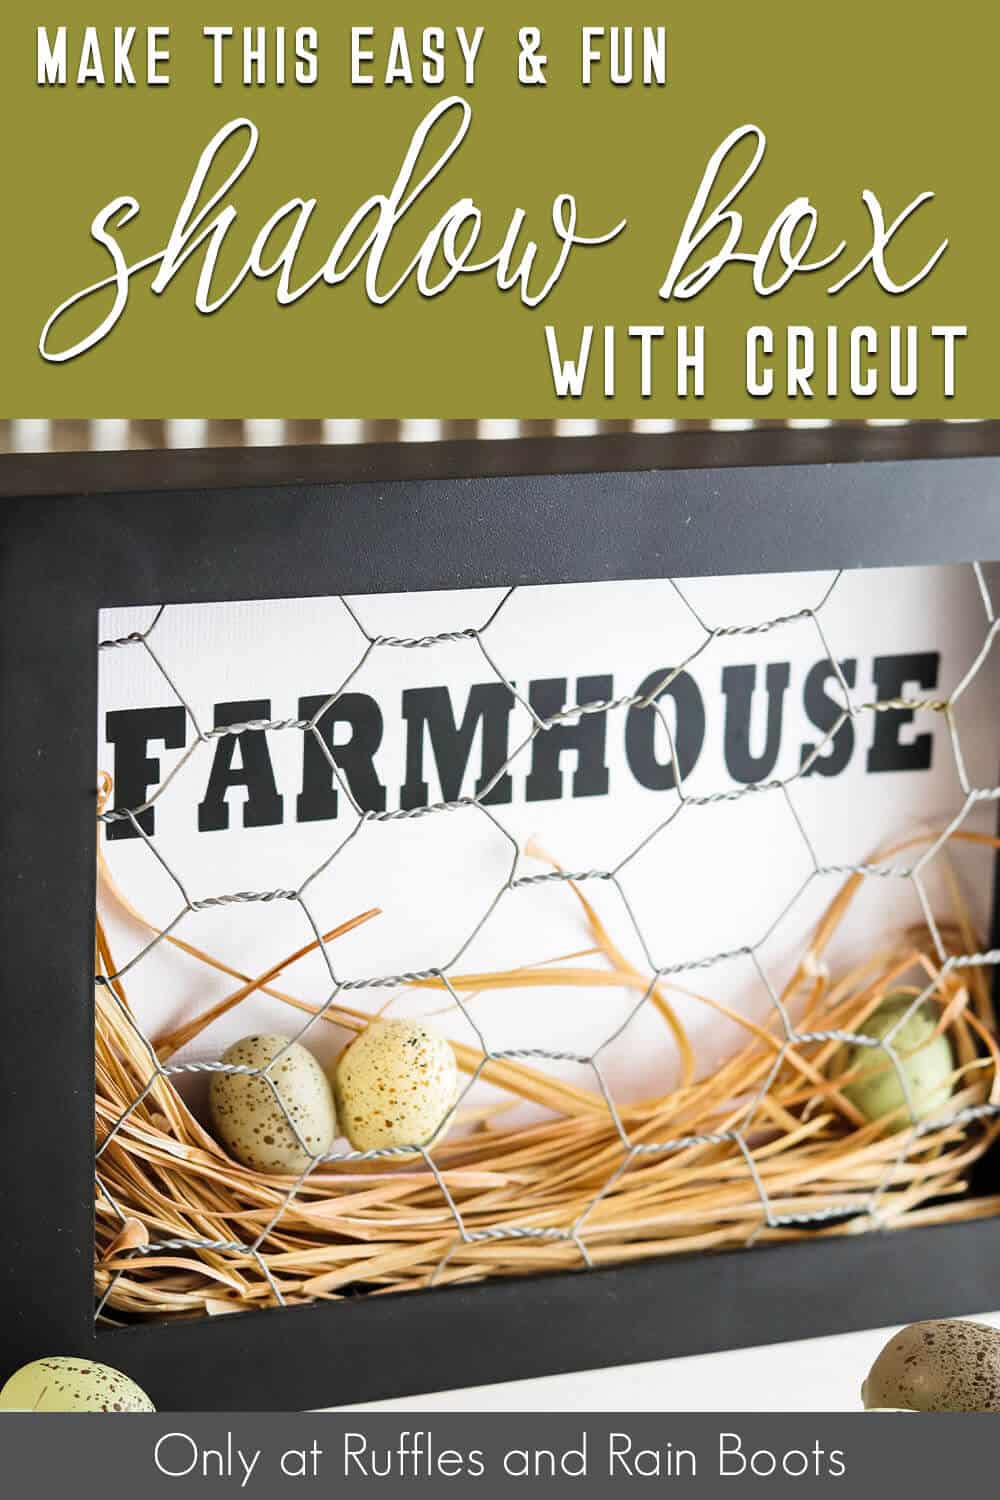 shadowbox farmhouse craft with cricut with text which reads make this easy and fun shadow box with cricut